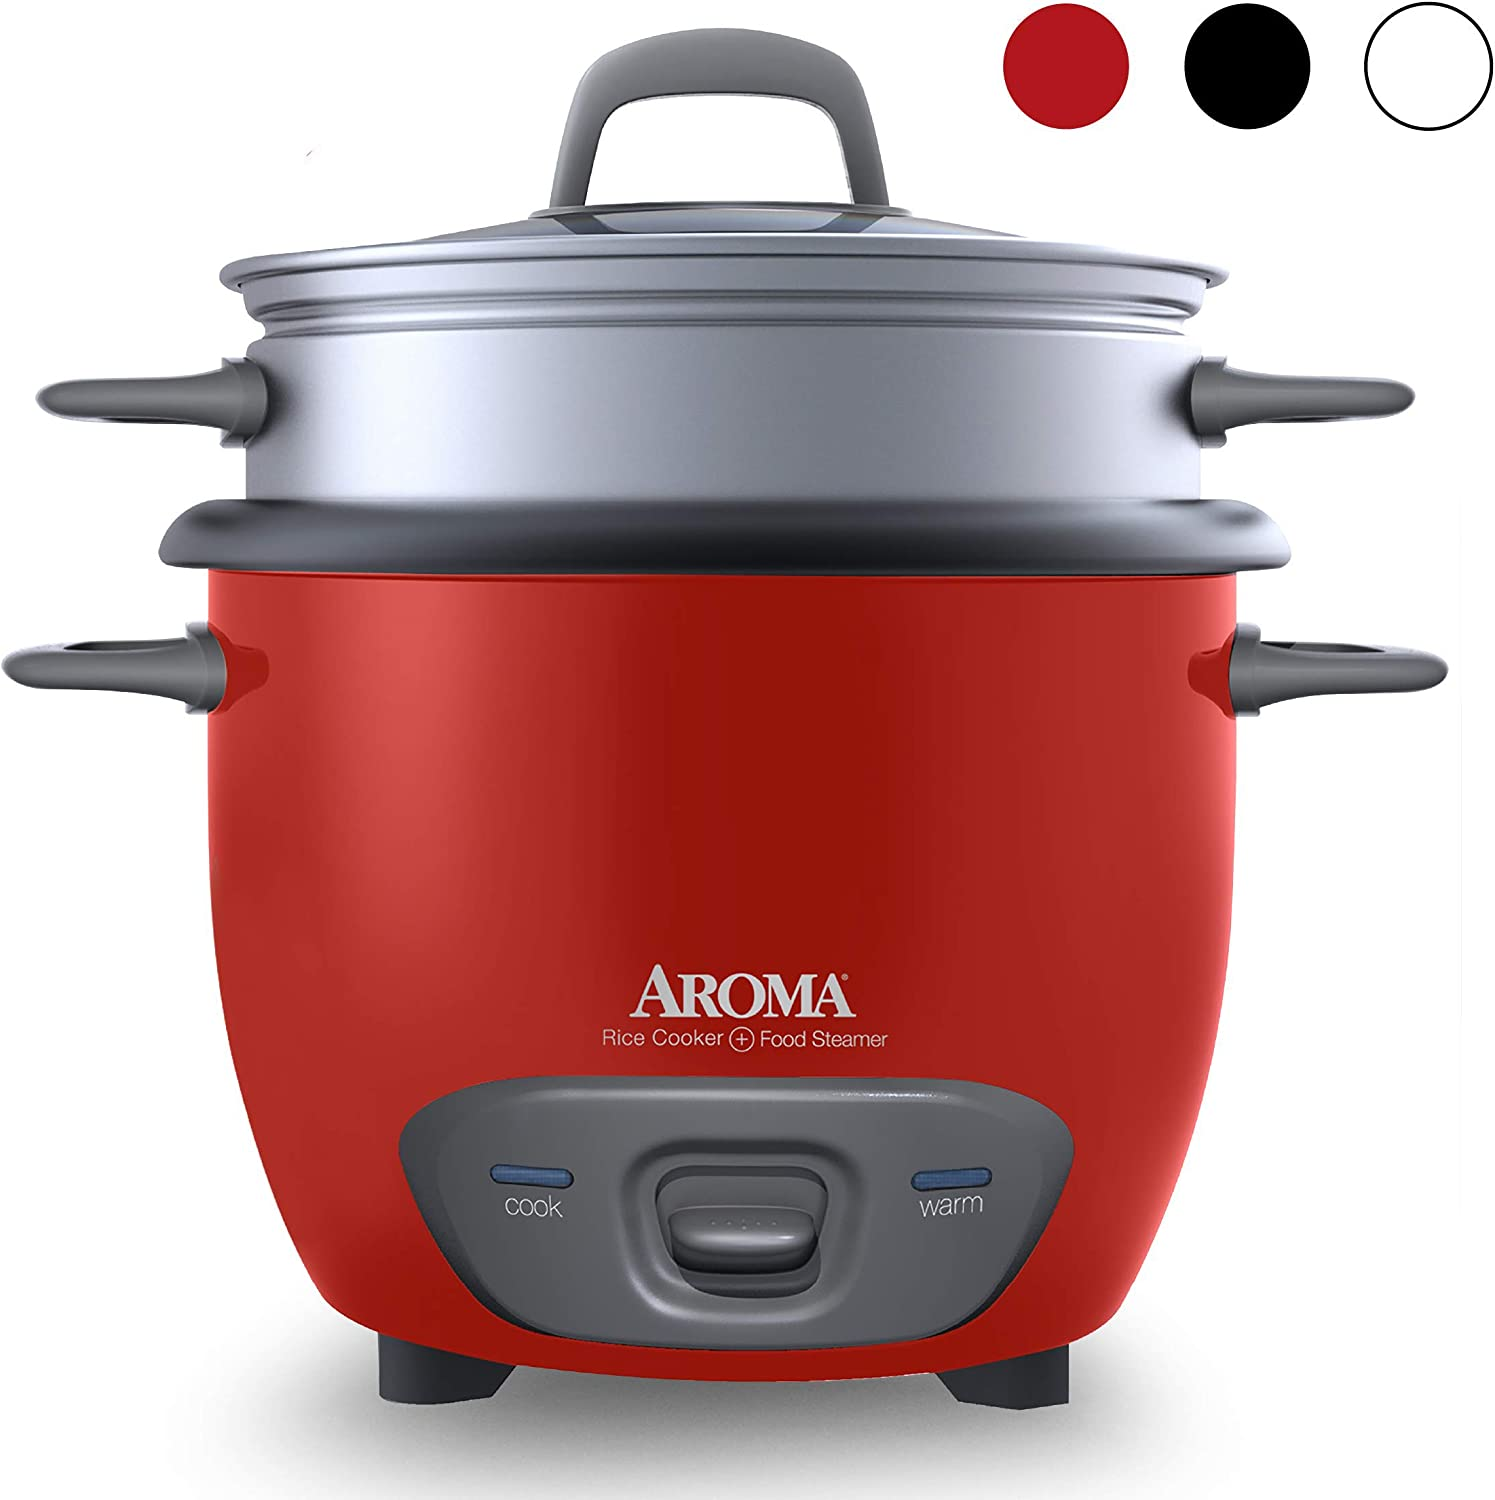 Aroma Housewares ARC-743-1NGR 6-Cup (Cooked) (3-Cup UNCOOKED) Pot Style Rice Cooker and Food Steamer